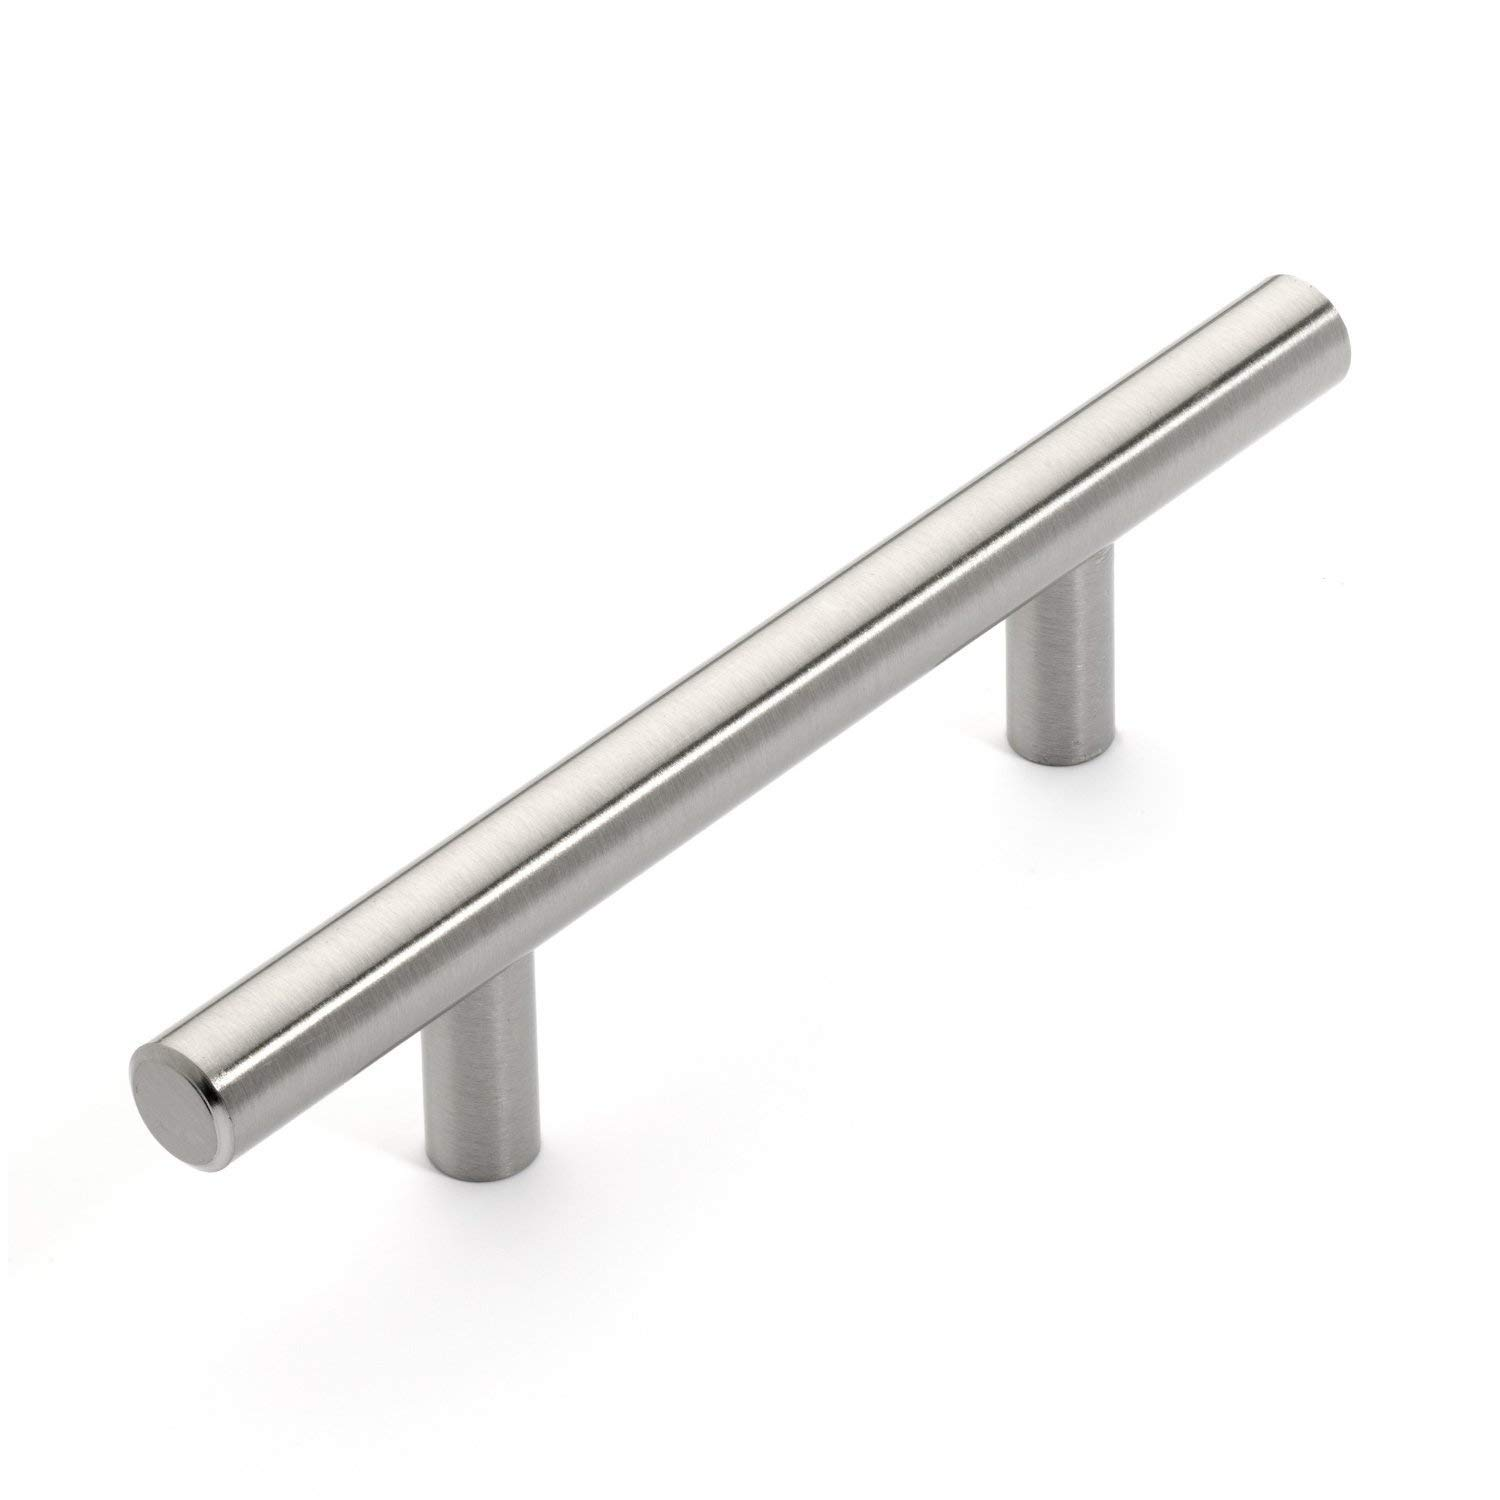 "Hamilton Bowes Satin Nickel Cabinet Hardware Euro Style Bar Handle Pull - 3"" Hole Centers, 5-3/4"""" Overall Length (25)"